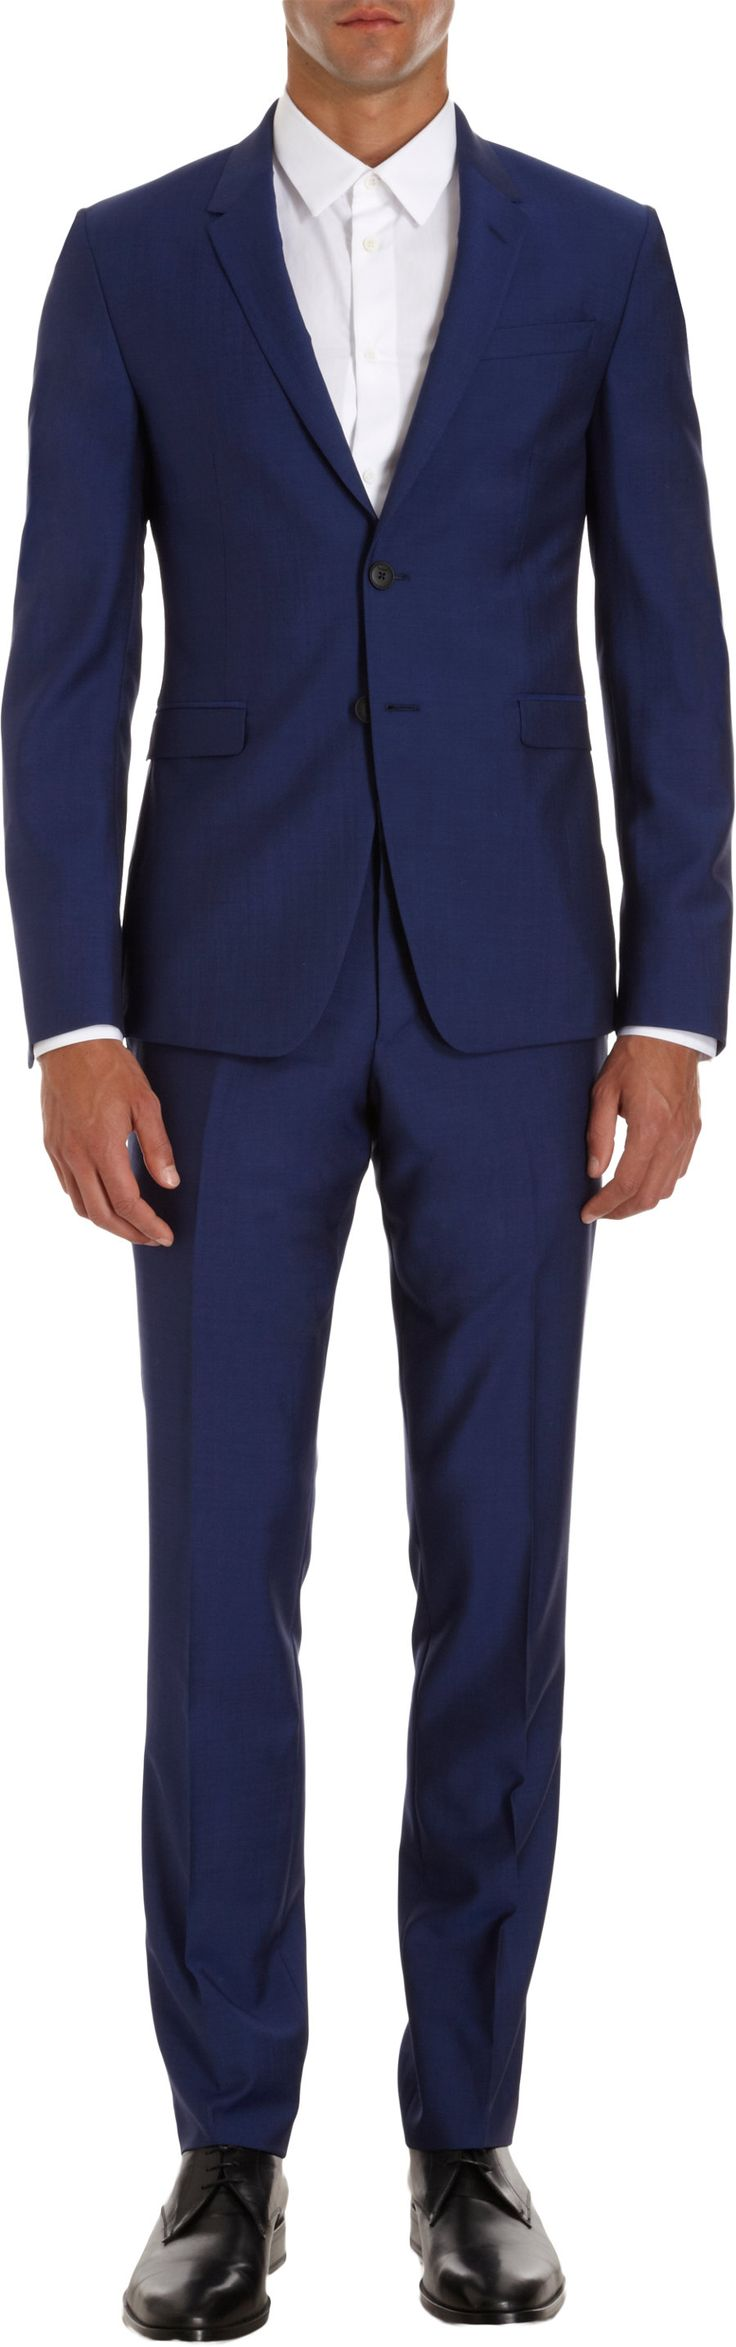 Paul Smith Kennsington Suit at Barneys.com